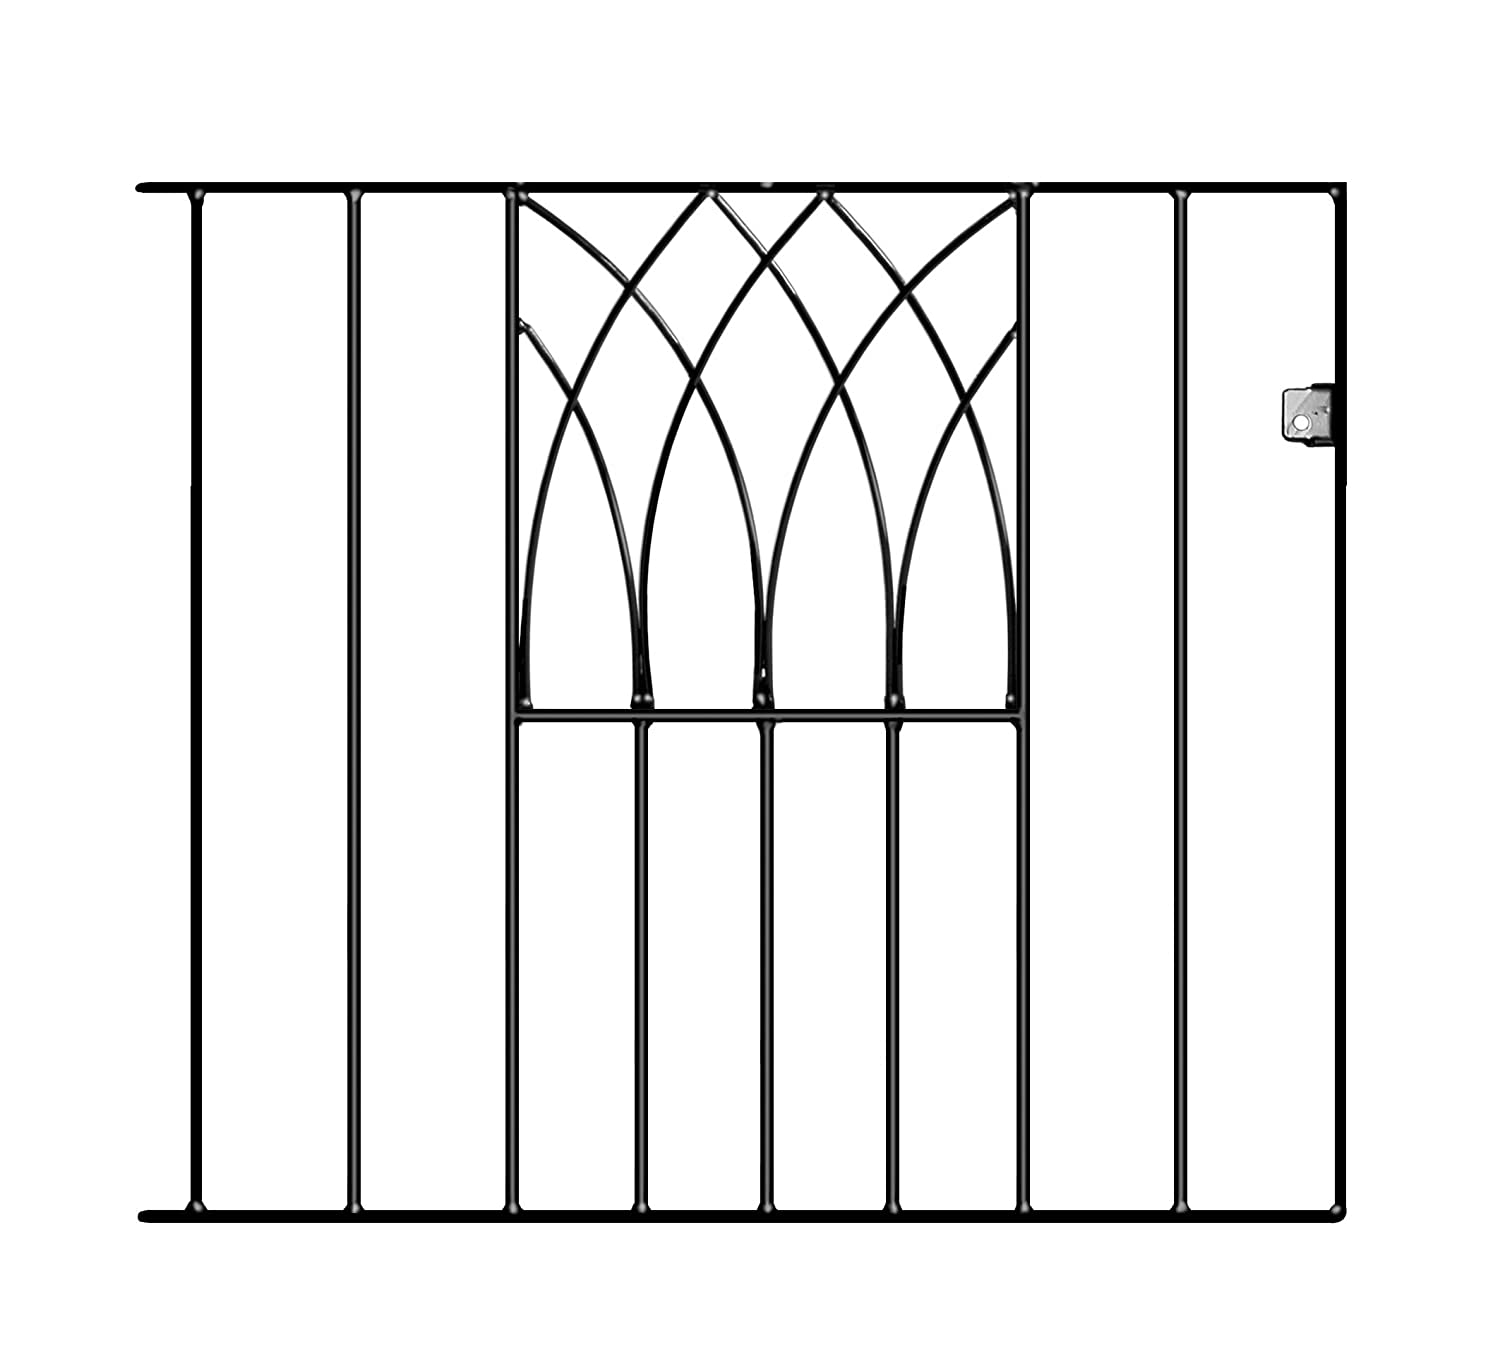 ABBEY Modern Single Garden Gates 838mm GAP X 815mm HIGH wrought iron metal gate